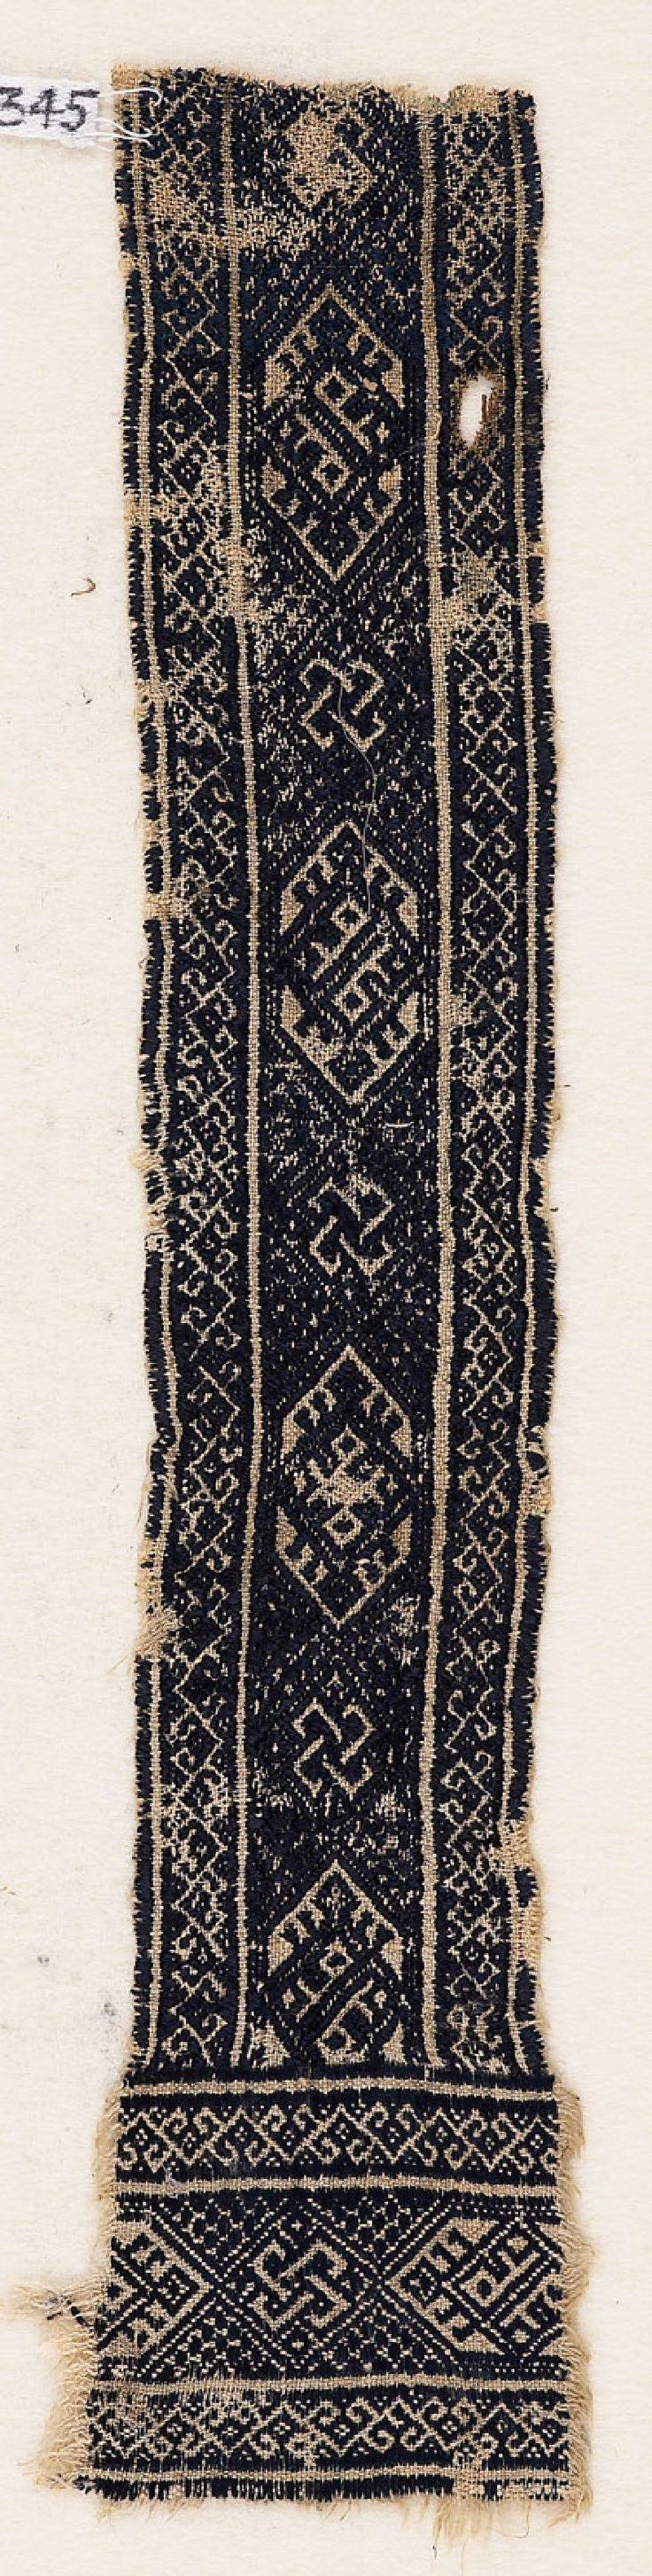 Textile fragment with interlacing knots, cartouches, diamond-shapes, and hooksfront